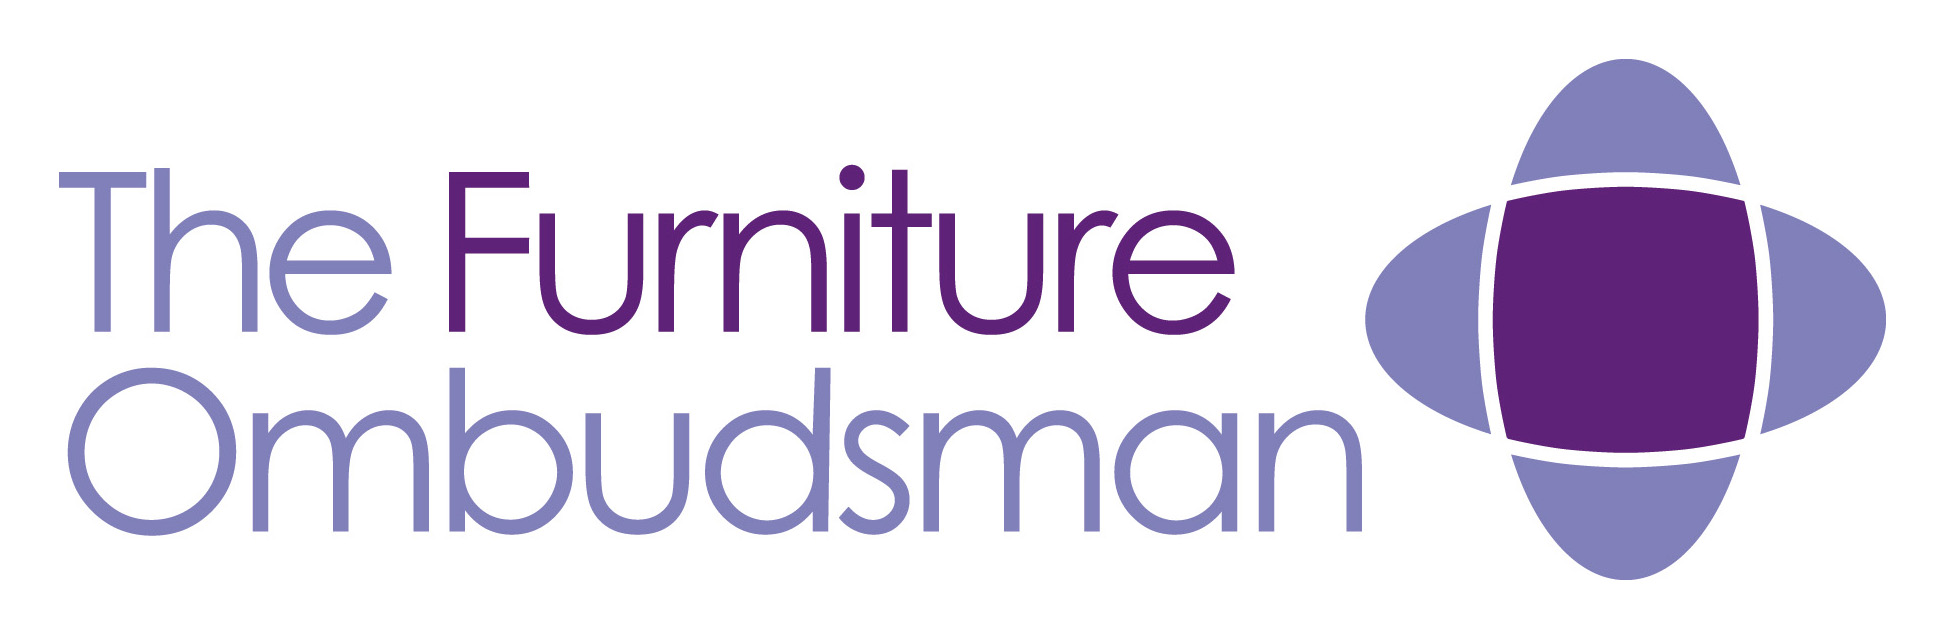 The furniture ombudsman launches new training events in for Furniture ombudsman